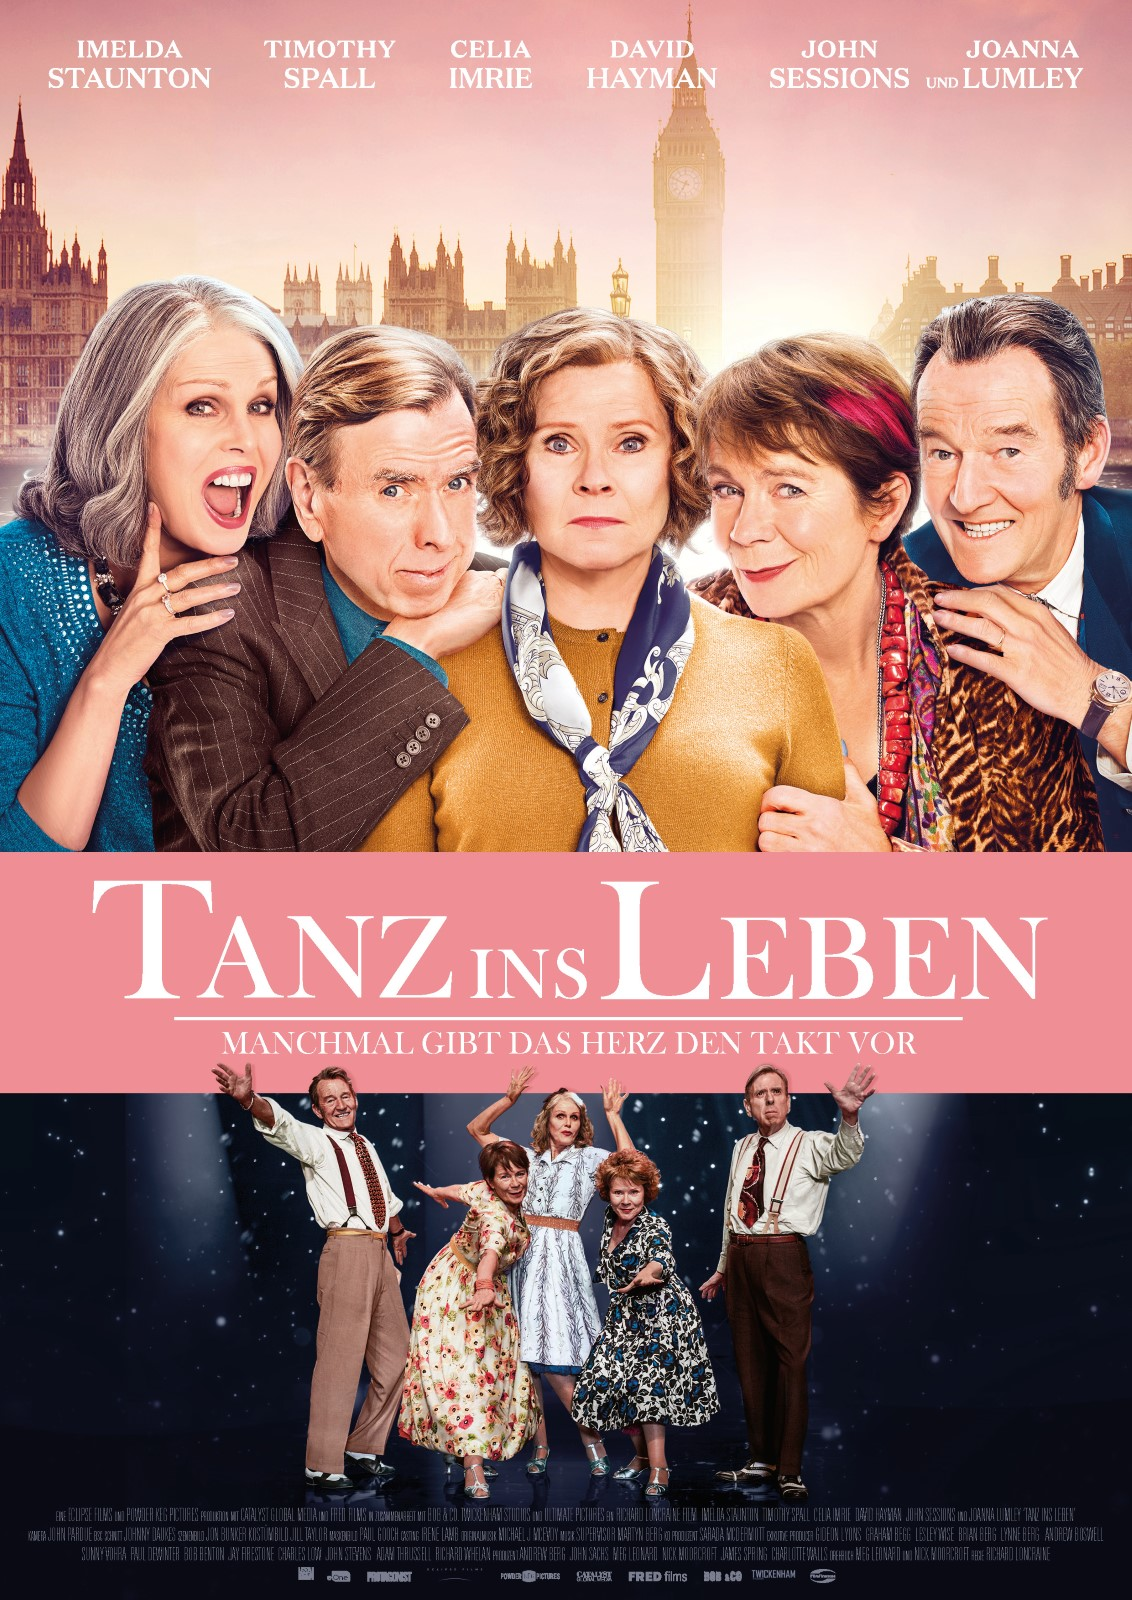 Tanz ins Leben / Finding Your Feet online schauen in HD als Stream & Download